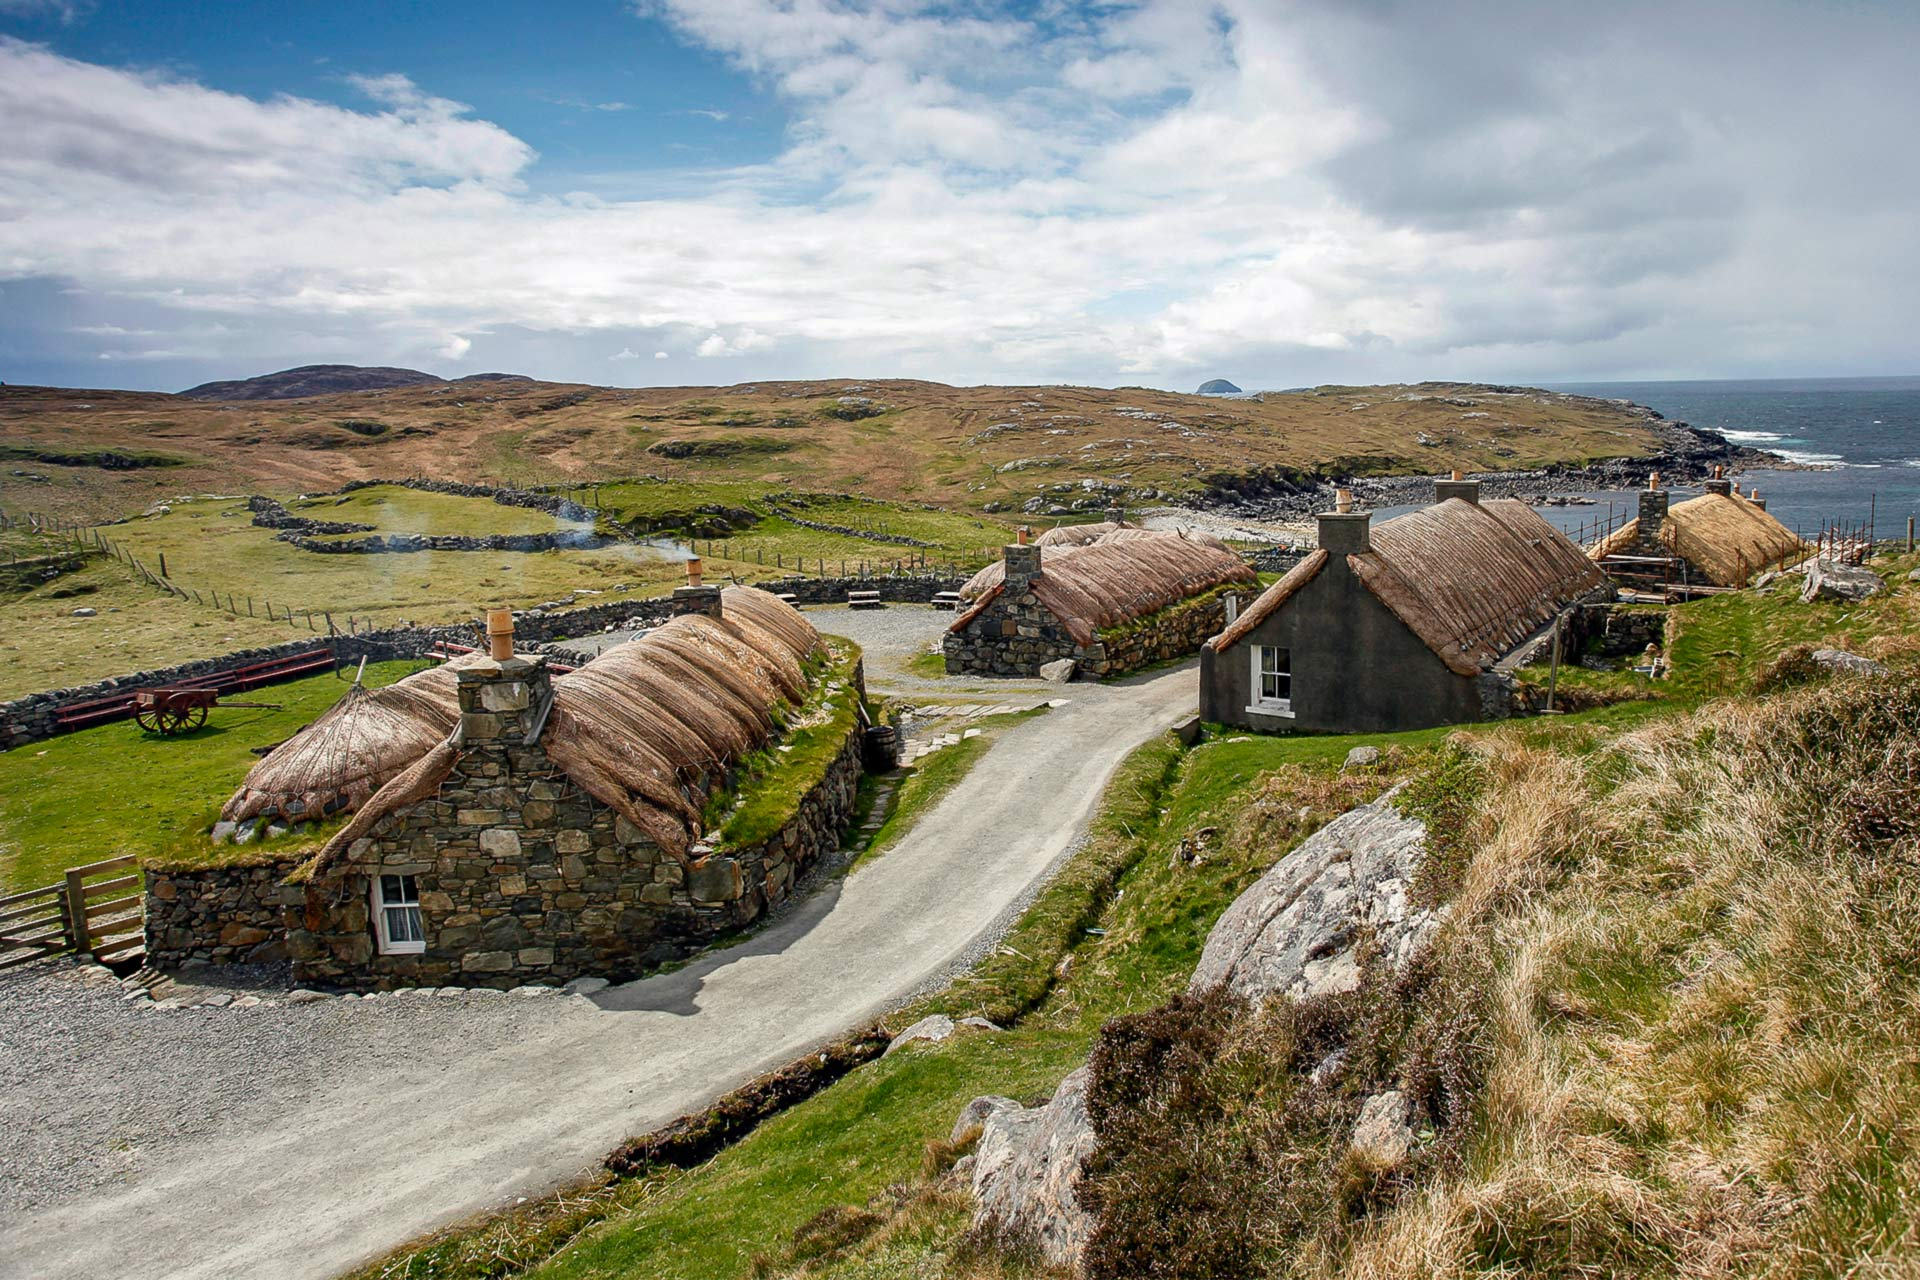 Black House The Northern Highlands and the Western Isles, 9 unusual hostels and bunkhouses in Scotland | VisitScotland